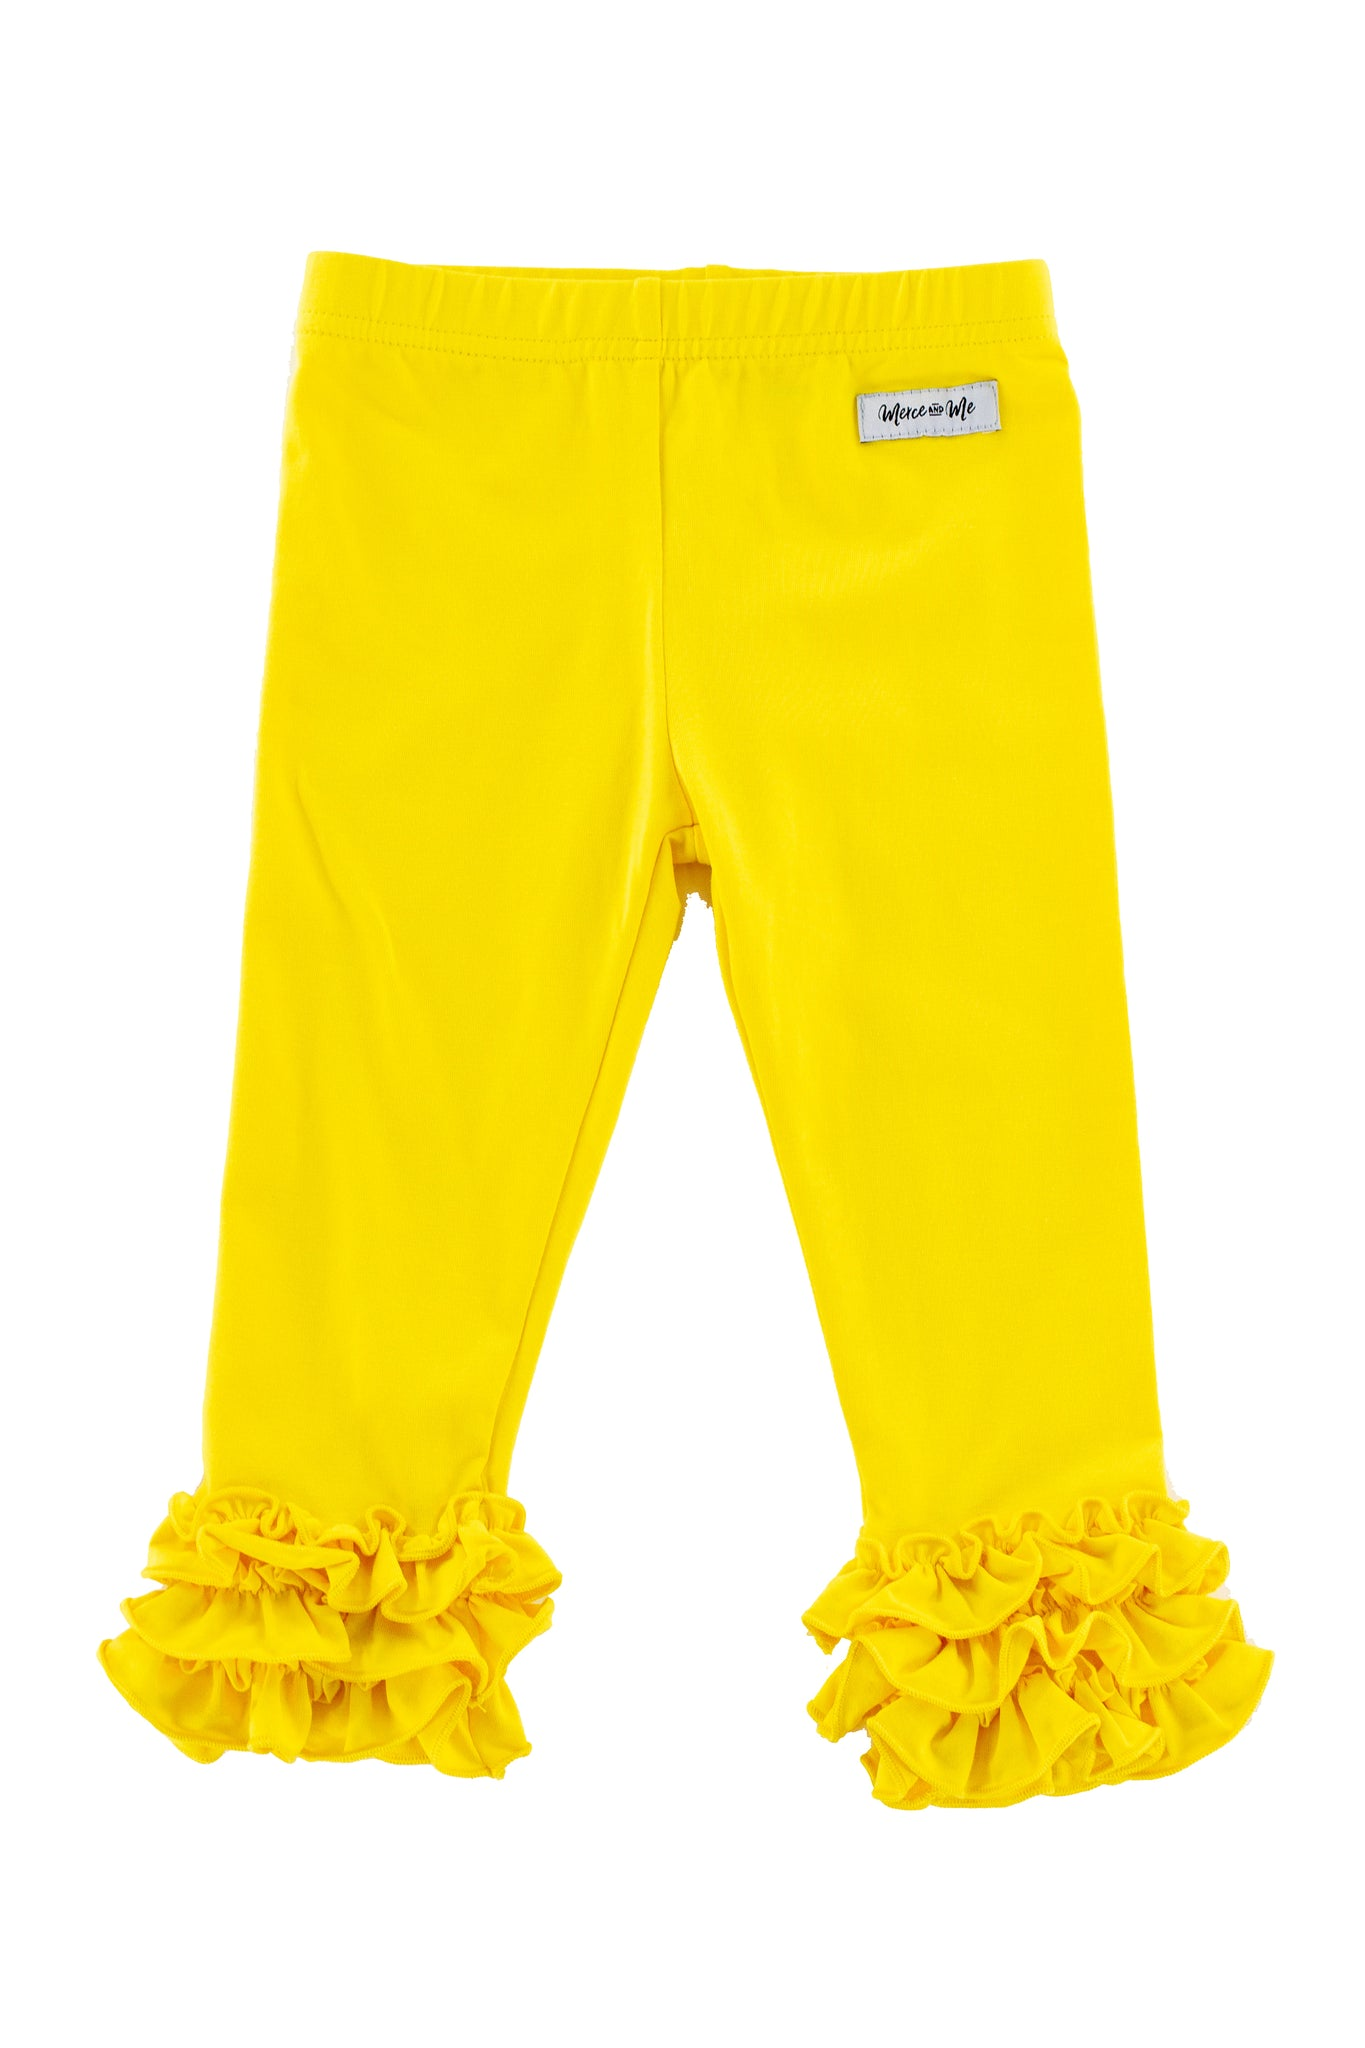 Iris Ruffle Leggings in Yellow